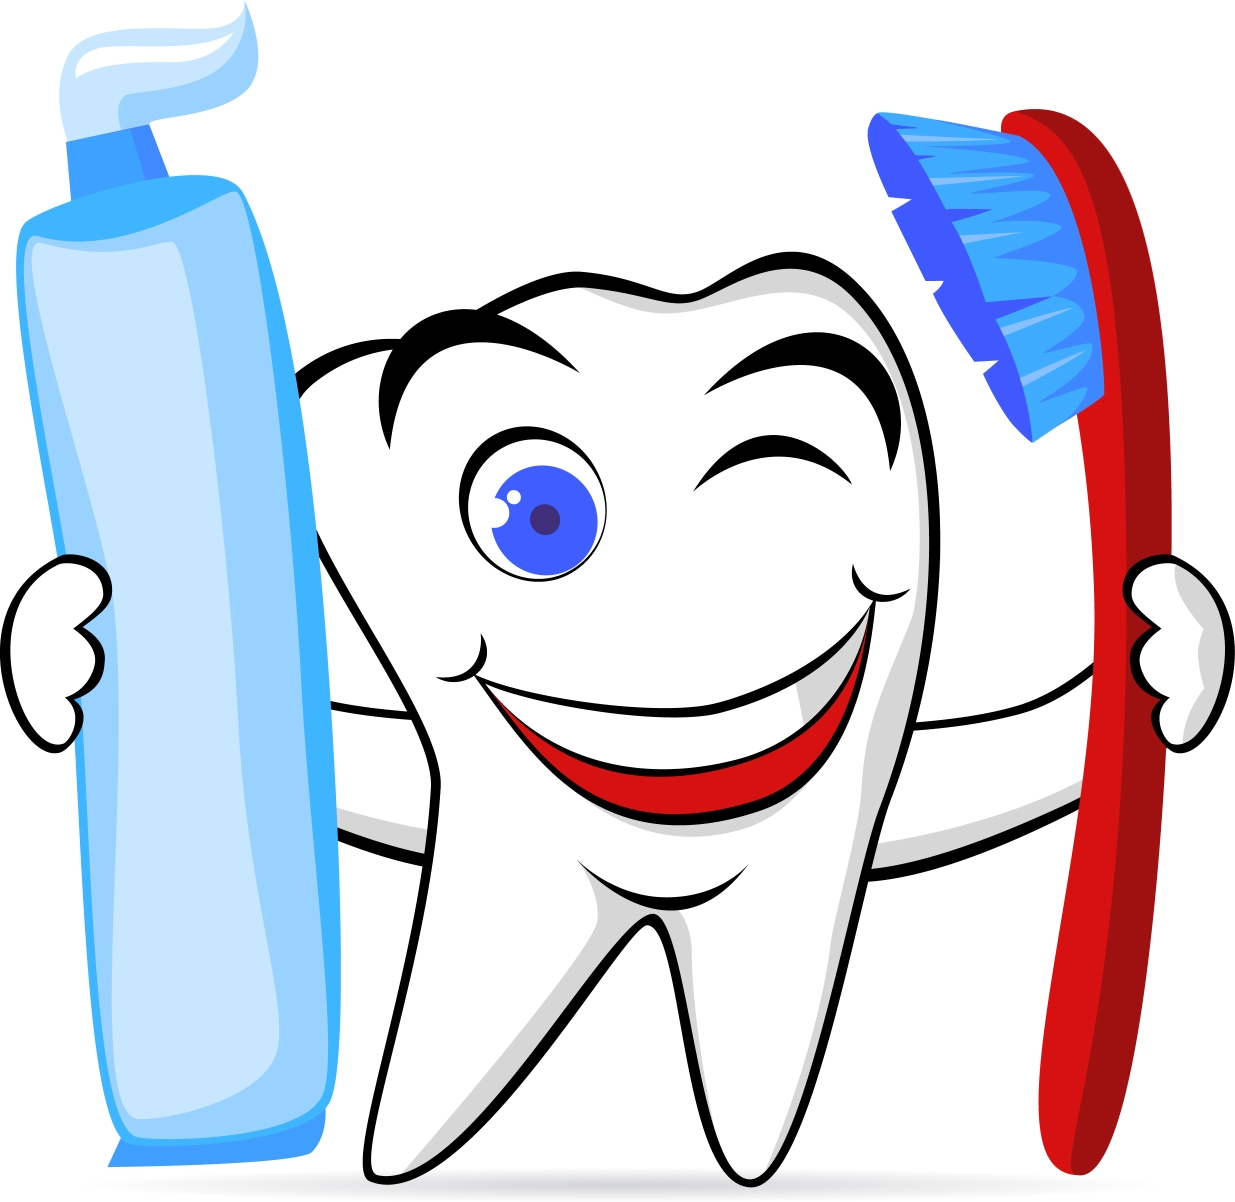 Teeth clipart dentist. Dental images about clip